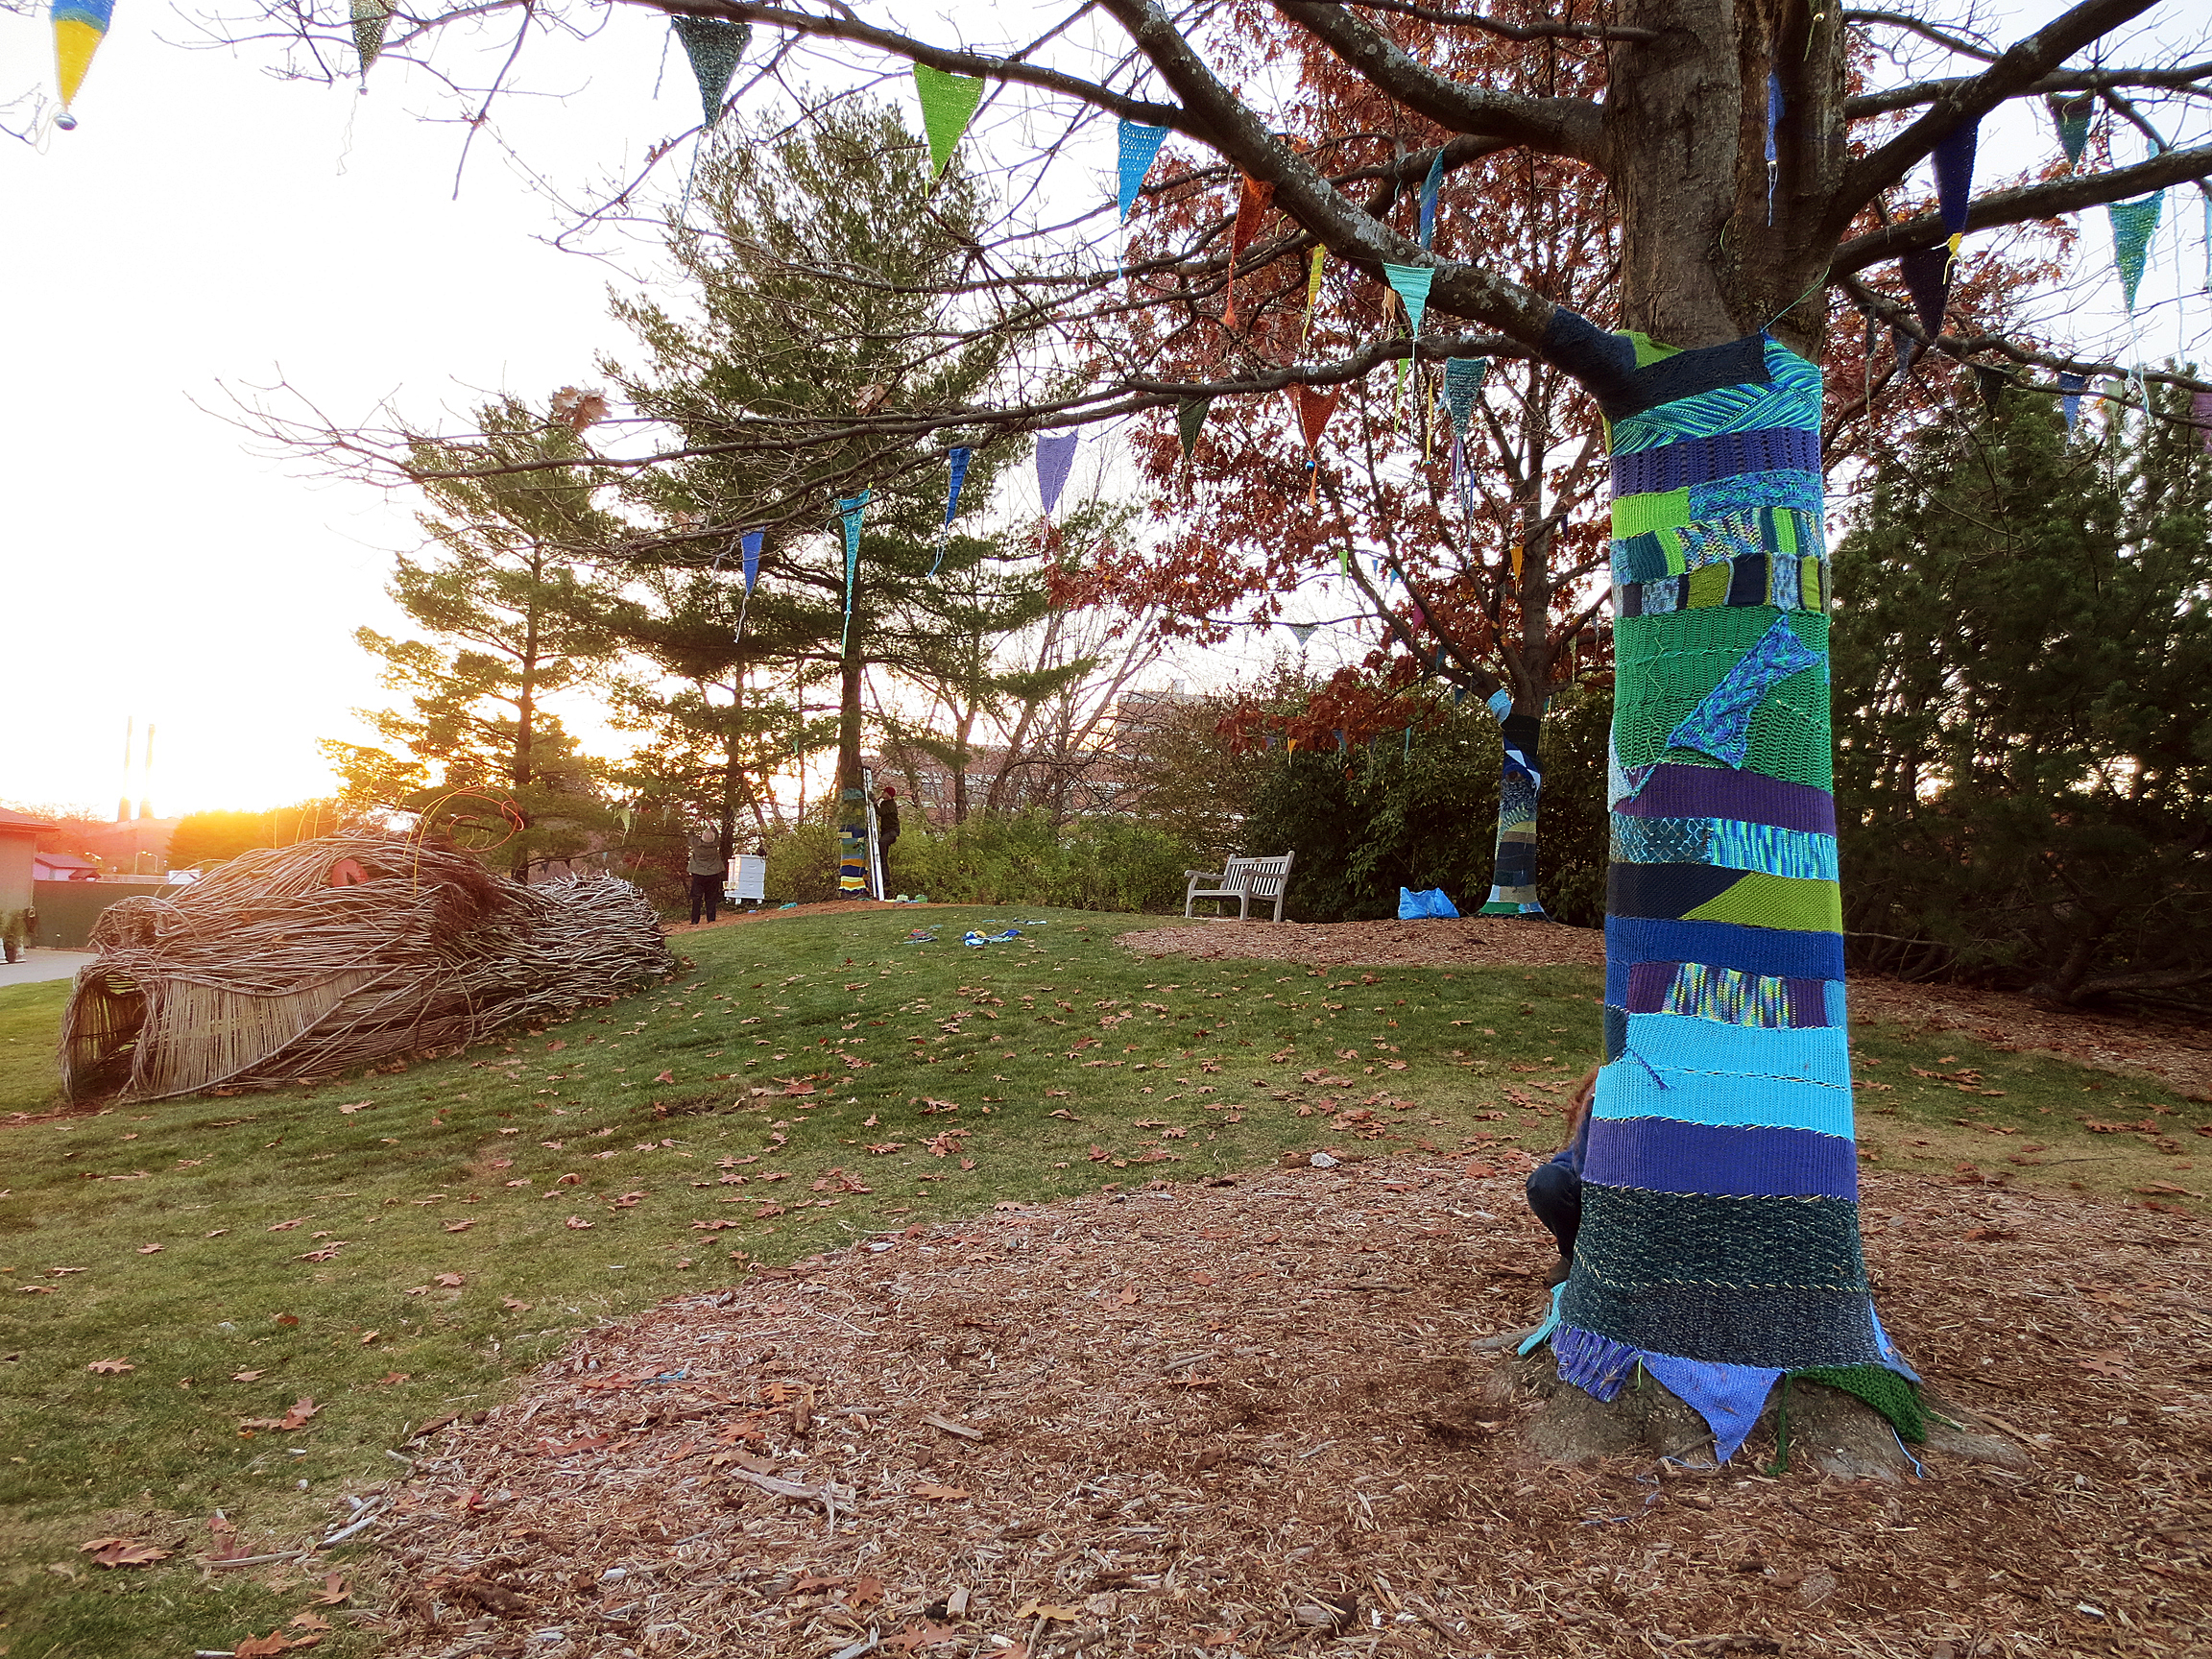 Colorjoy! » Blog Archive » Fun in the Yarn bOMbed Garden Today